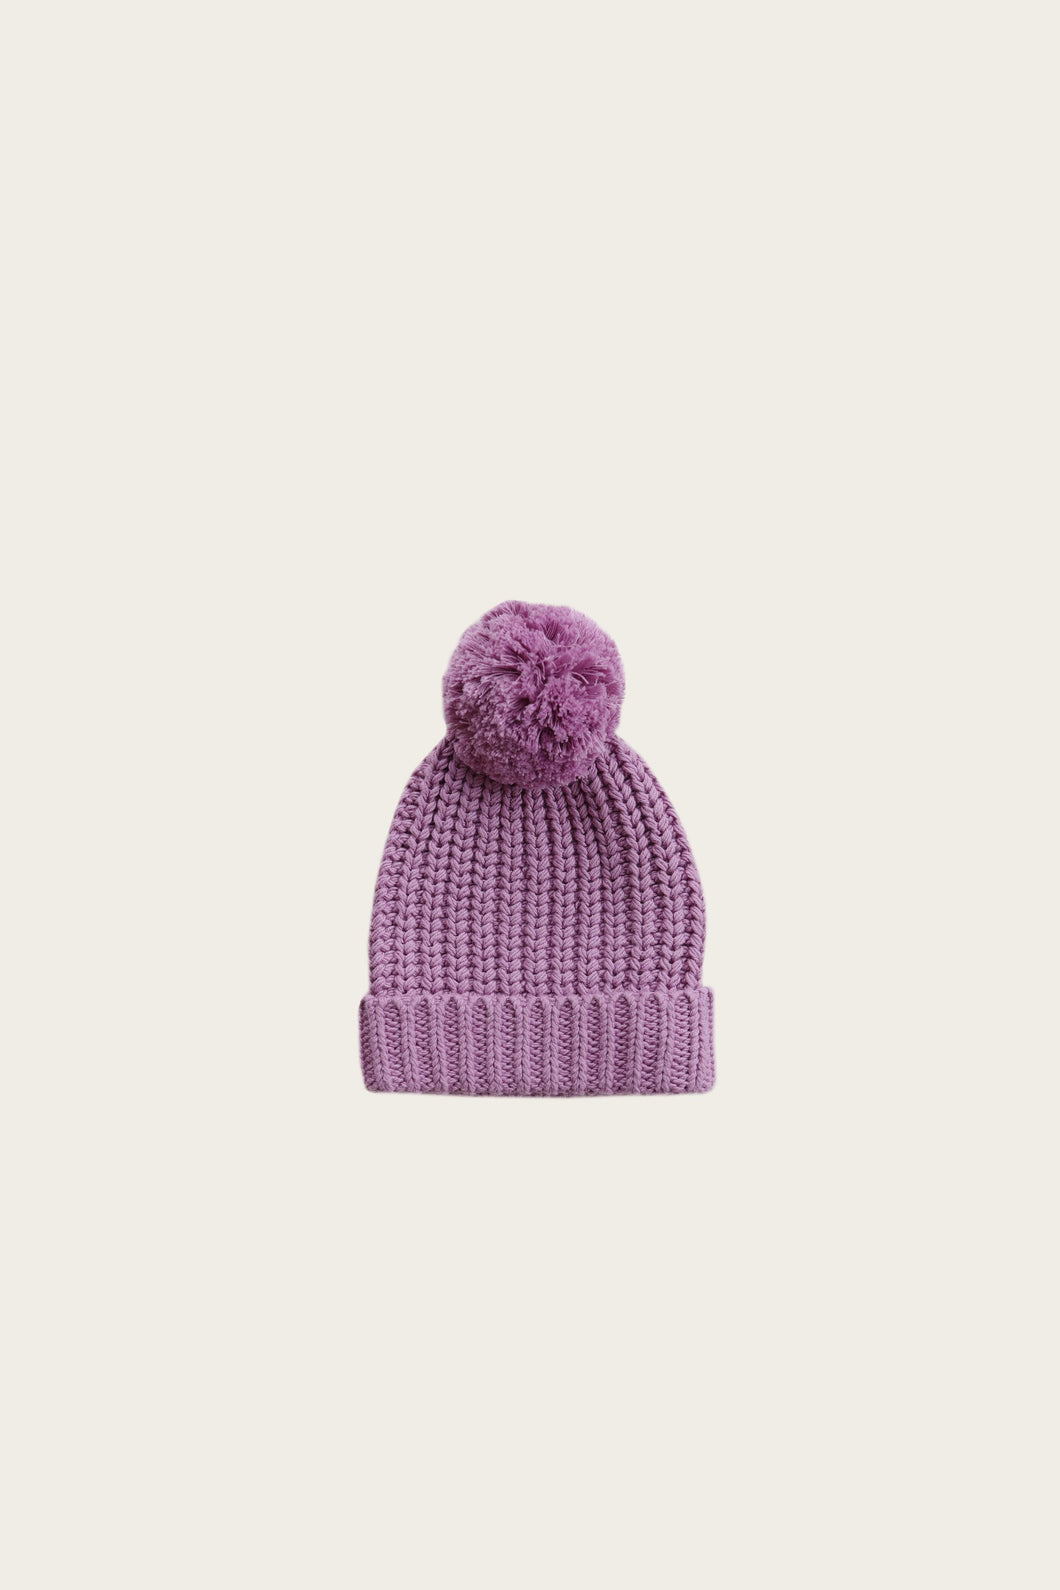 Jamie Kay cosy hat - grape